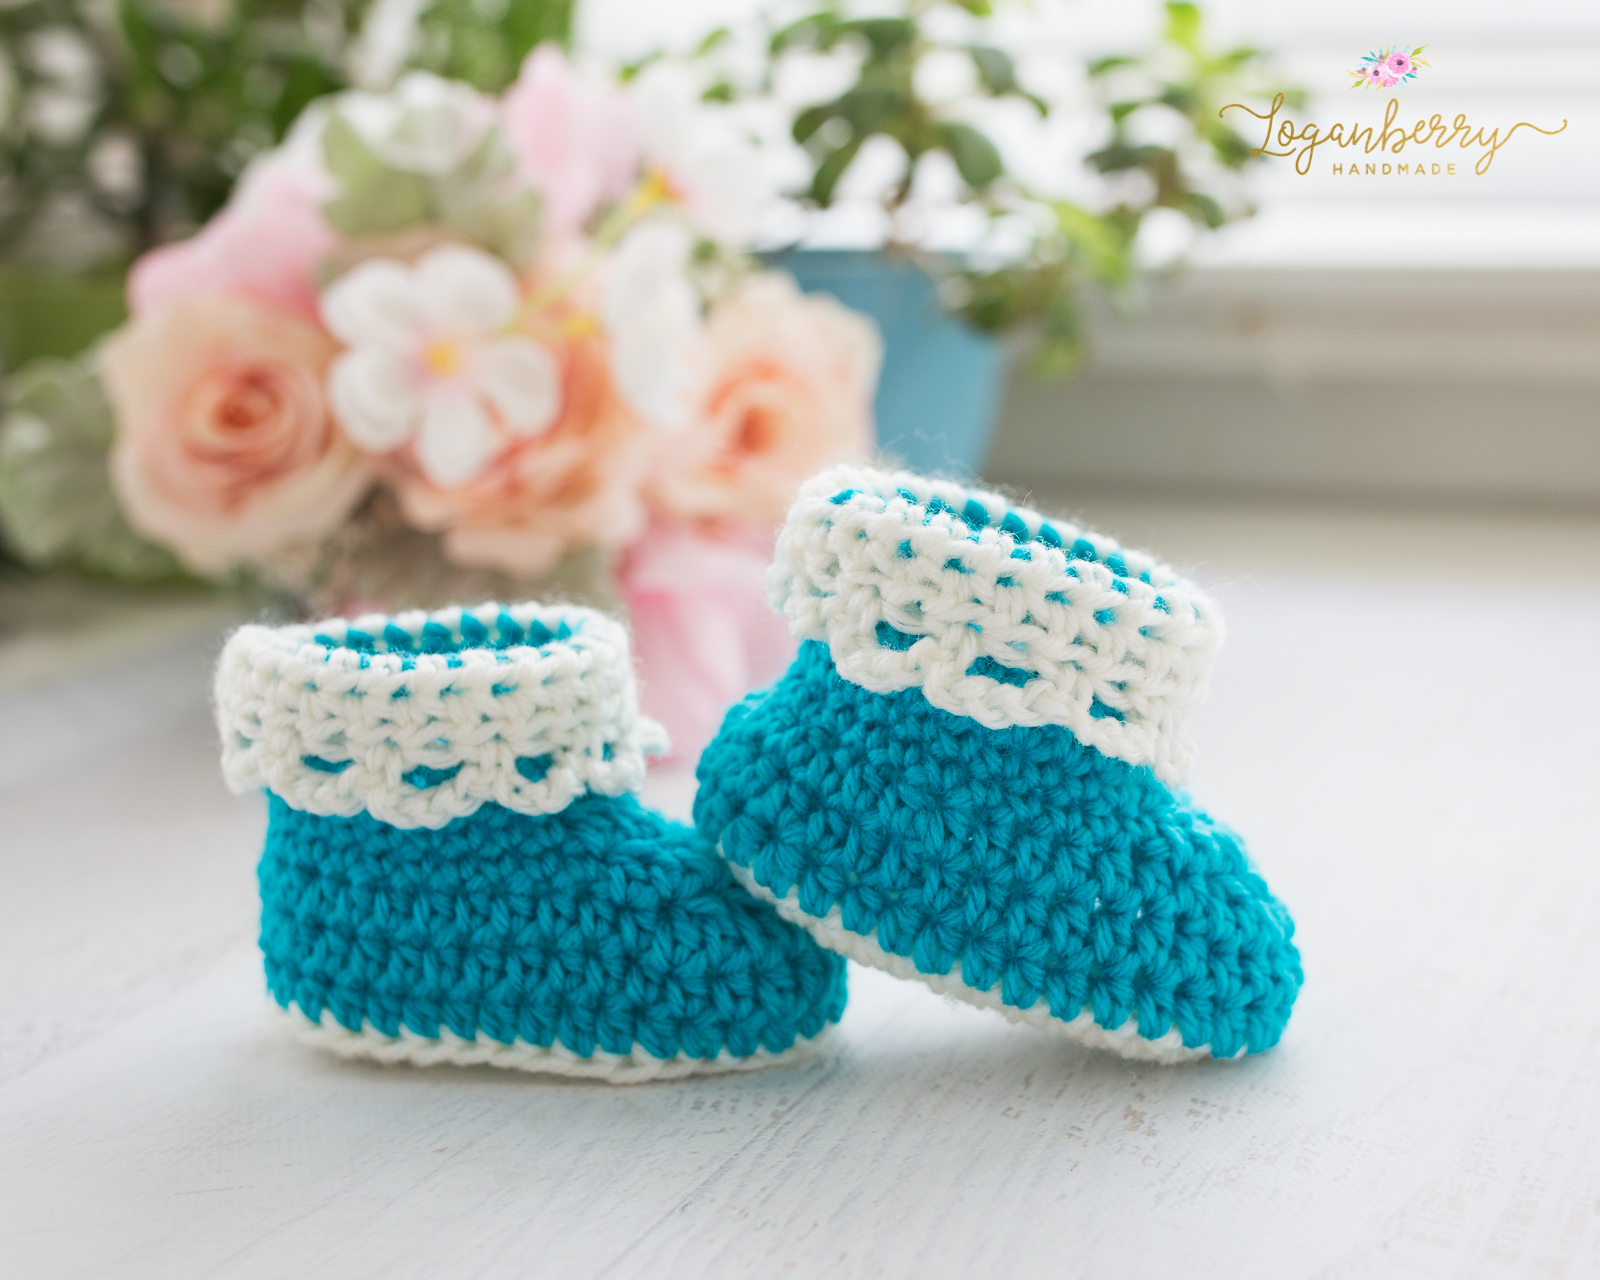 Lace-Trim Baby Booties – Free Crochet Pattern » Loganberry Handmade